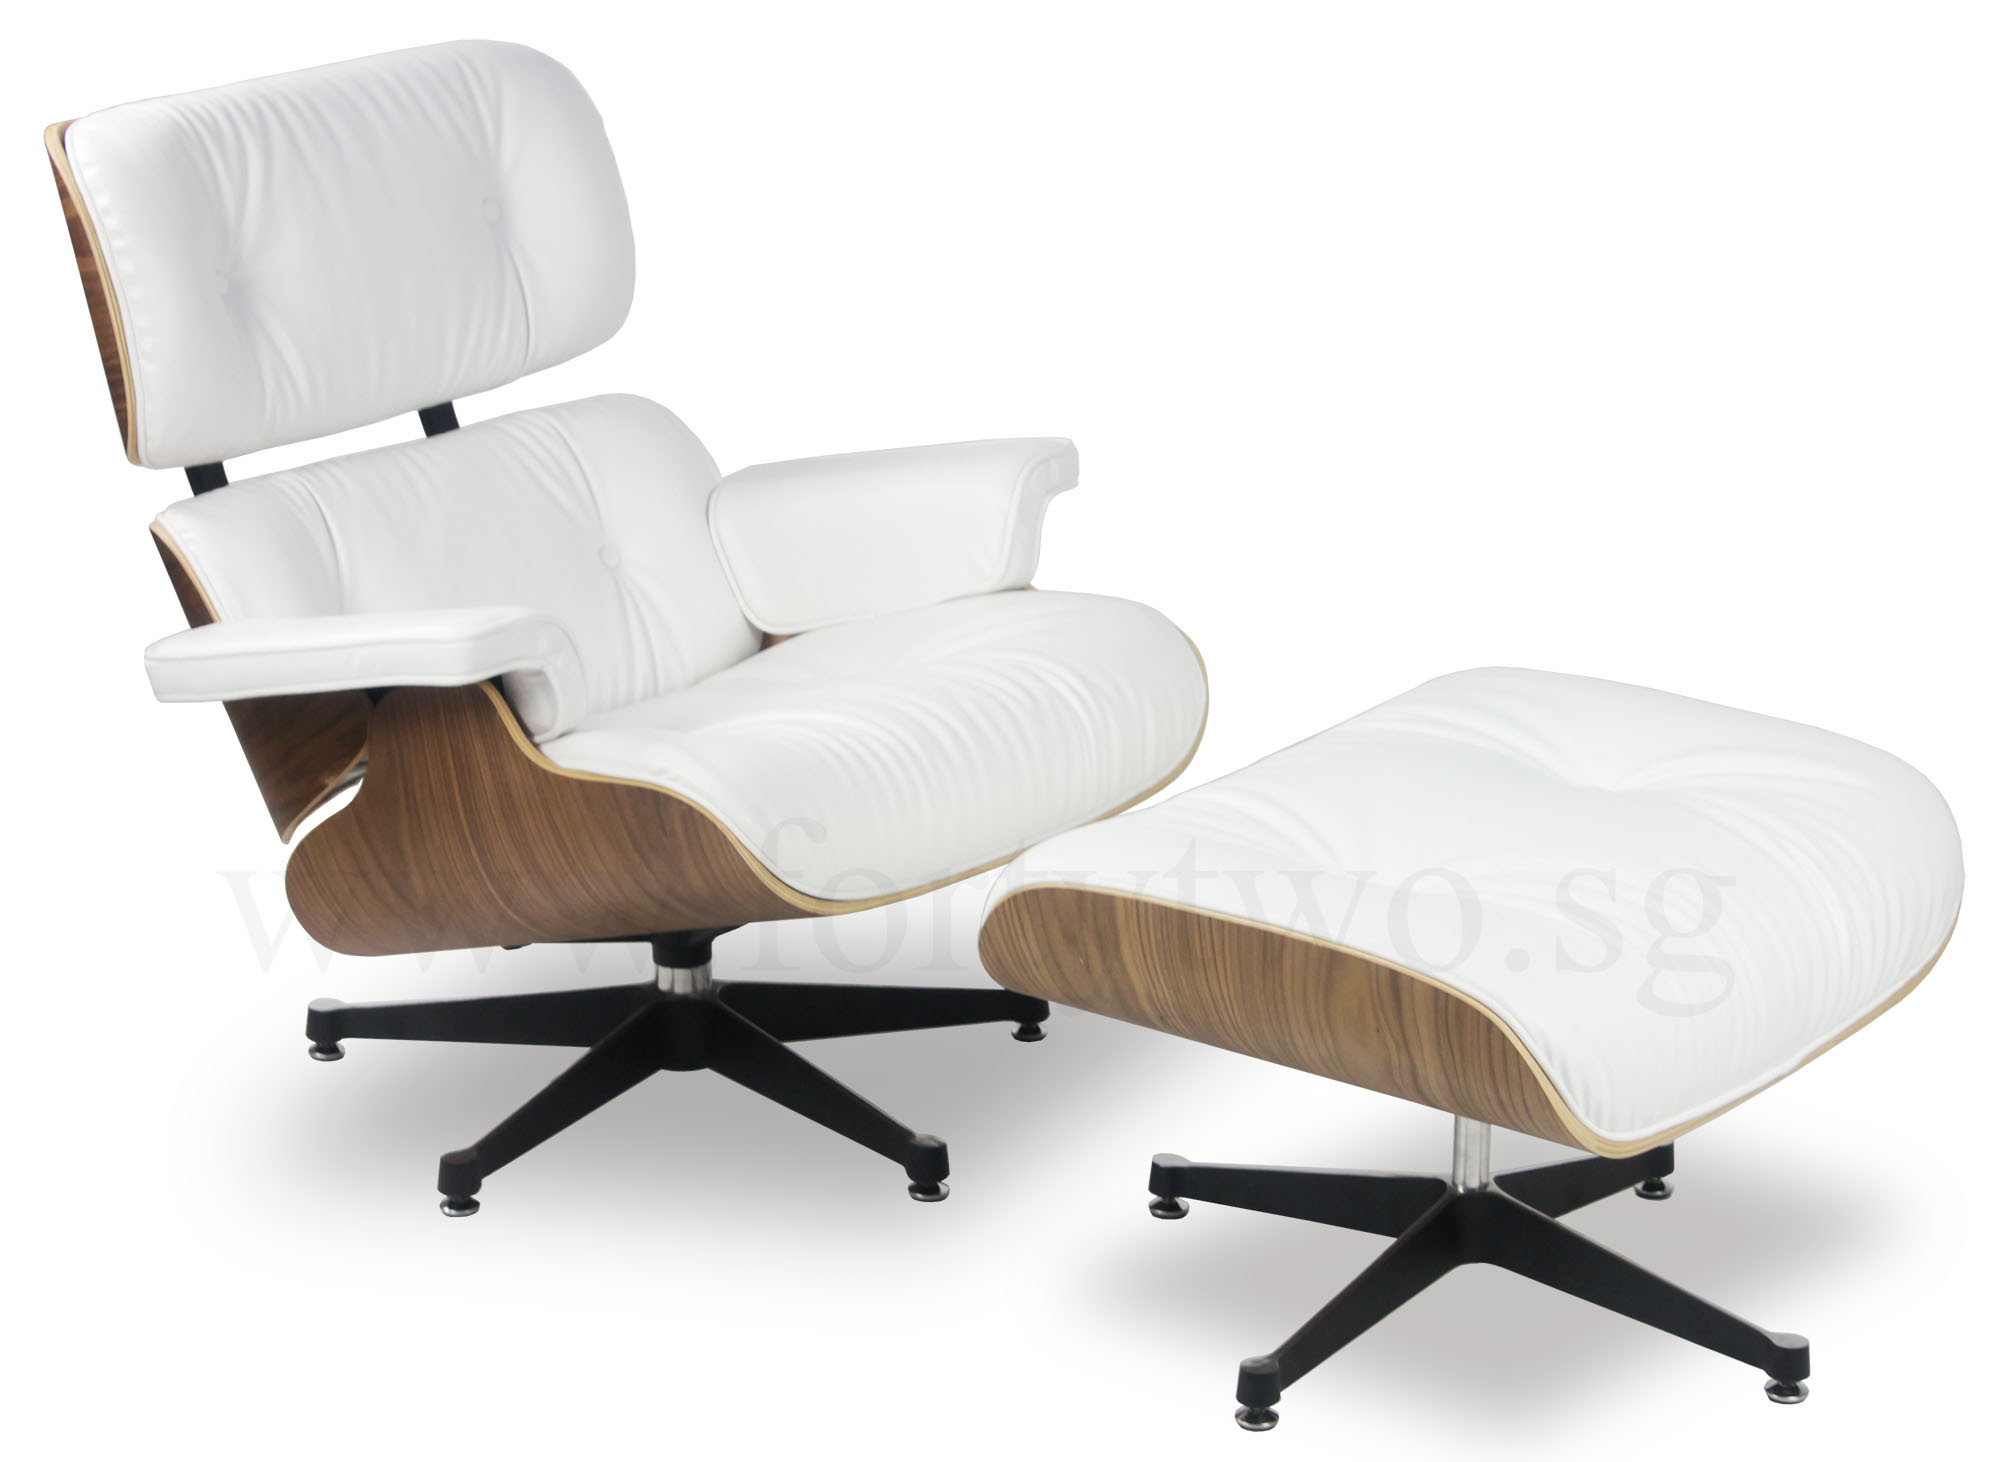 Eames replica lounge chair white leather furniture for Lounge chair replica erfahrungen